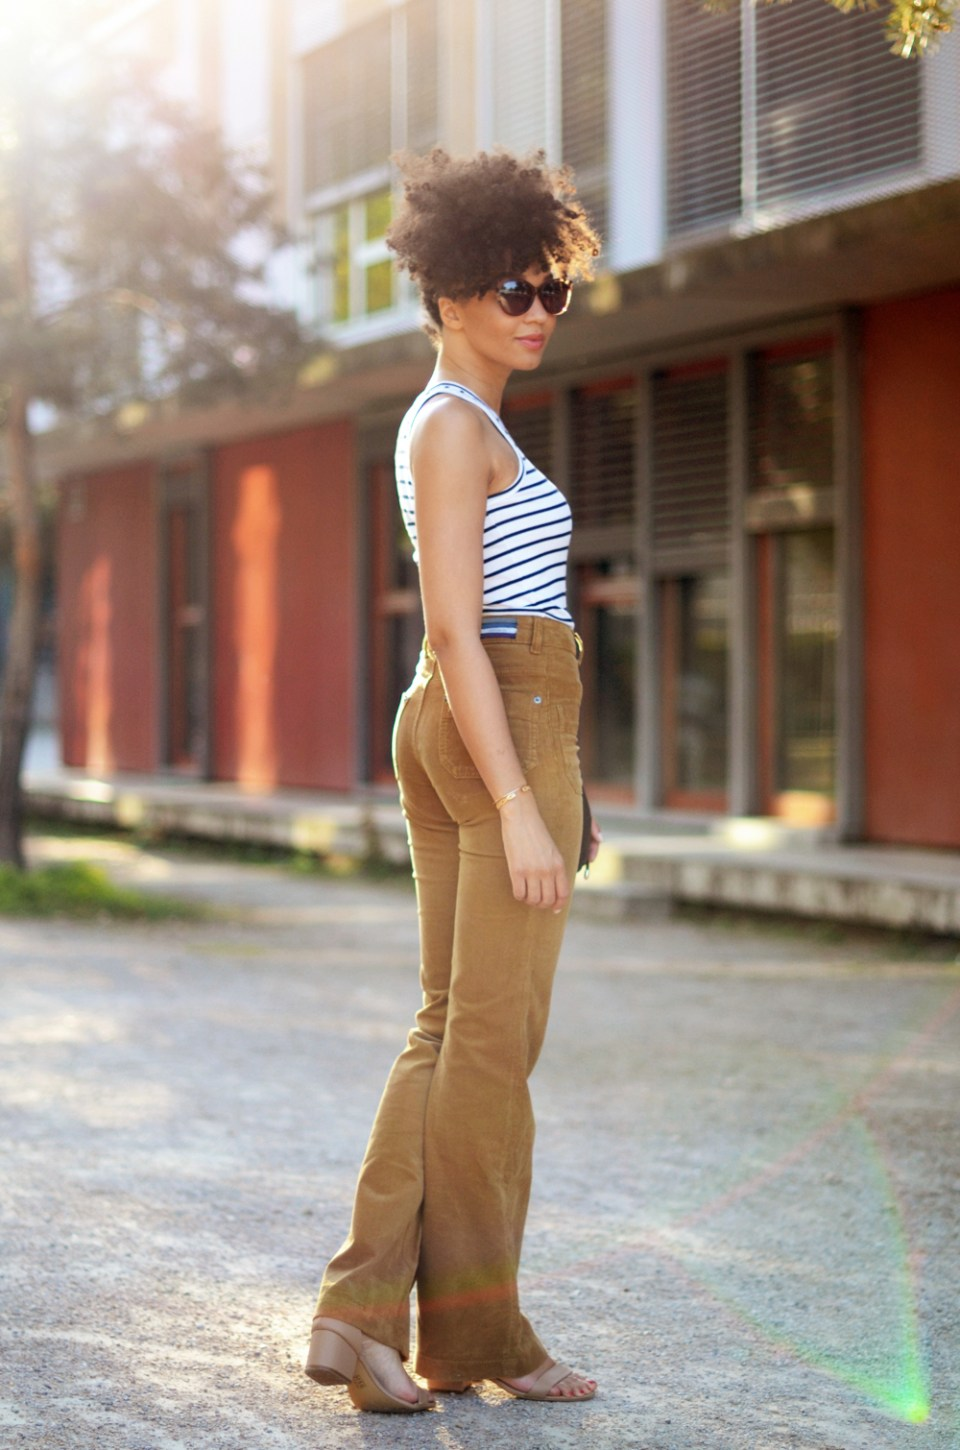 mercredie-blog-mode-geneve-suisse-blogueuse-bloggeuse-optic2000-lunettes-de-soleil-MAUI-JIM-natural-hair-frohawk-pantalon-vanessa-bruno-flare-Dompay2